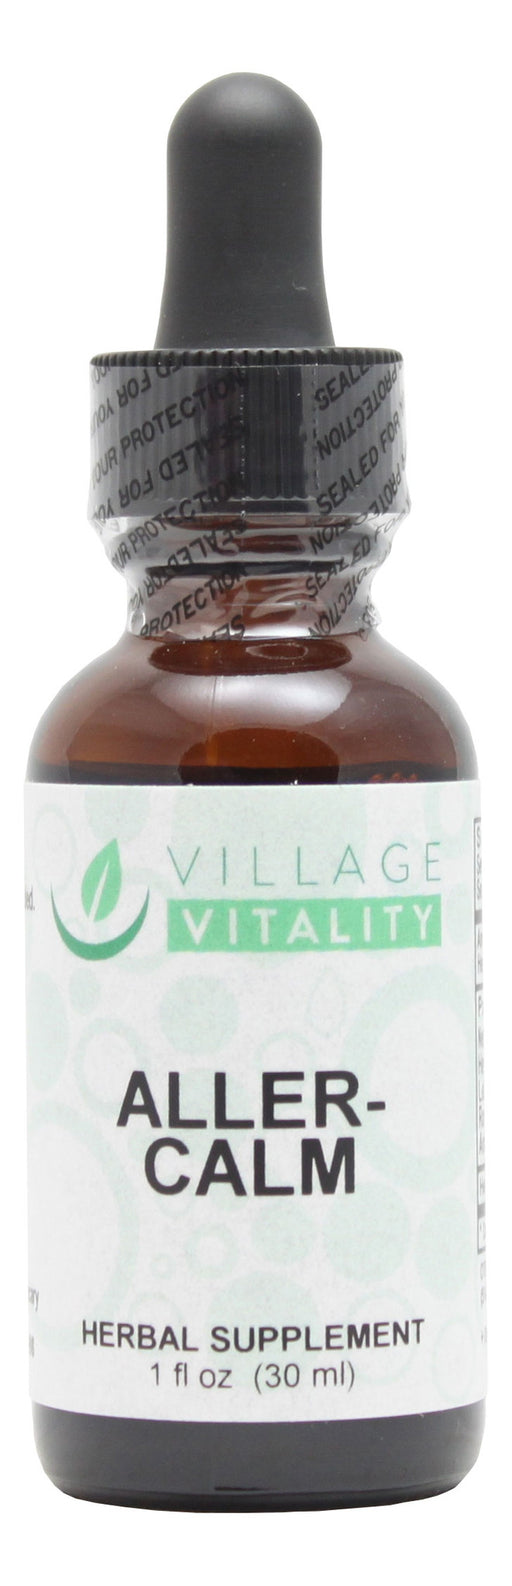 Village Vitality Aller-Calm - 1 oz Liquid